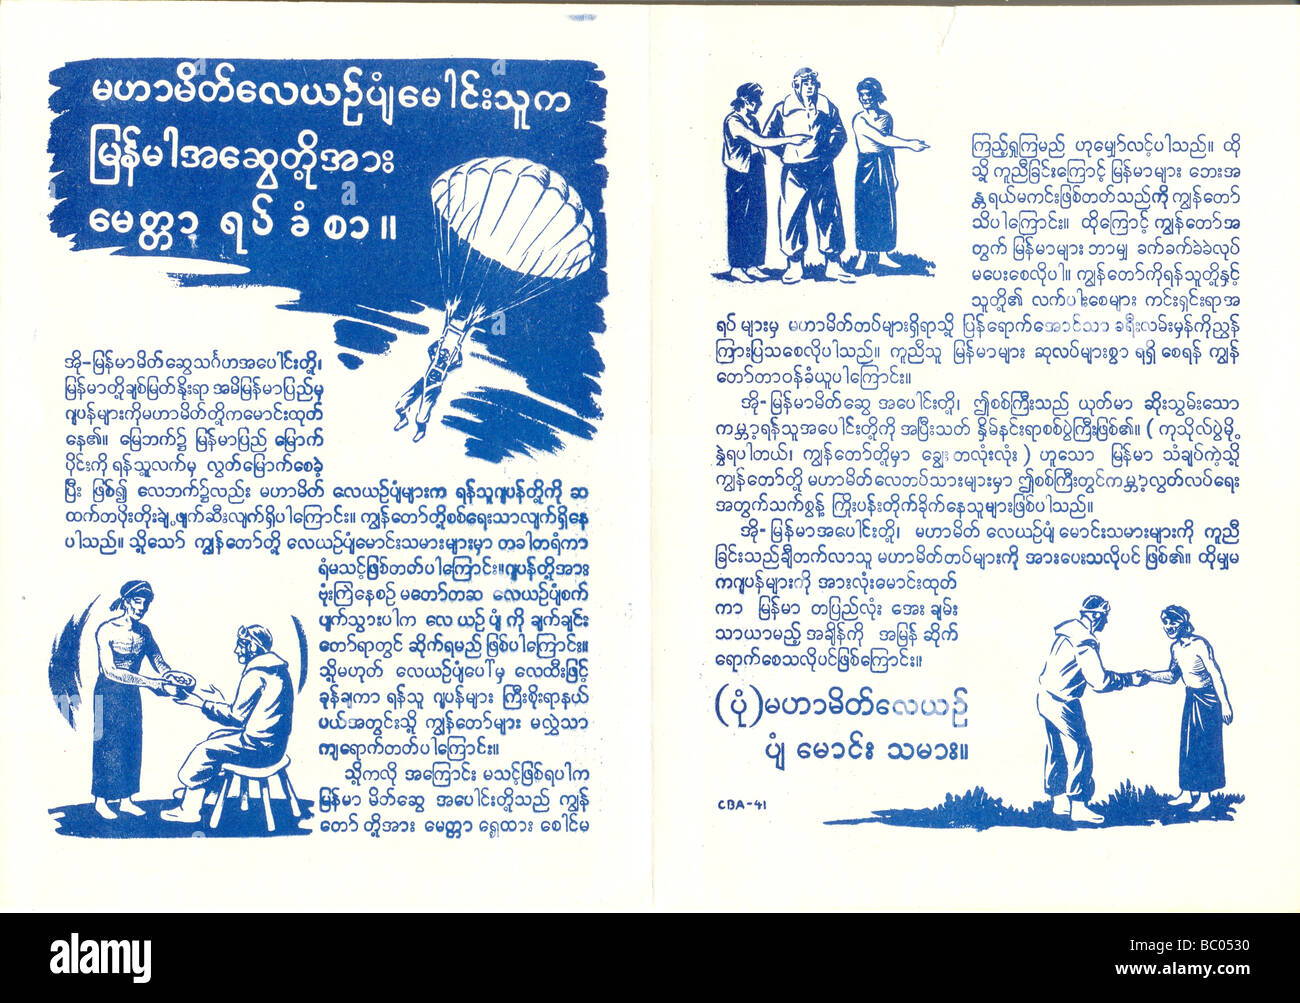 Interior of WW2 leaflet carried by airmen requesting help from local inhabitants in the event of a crash in Burma - Stock Image